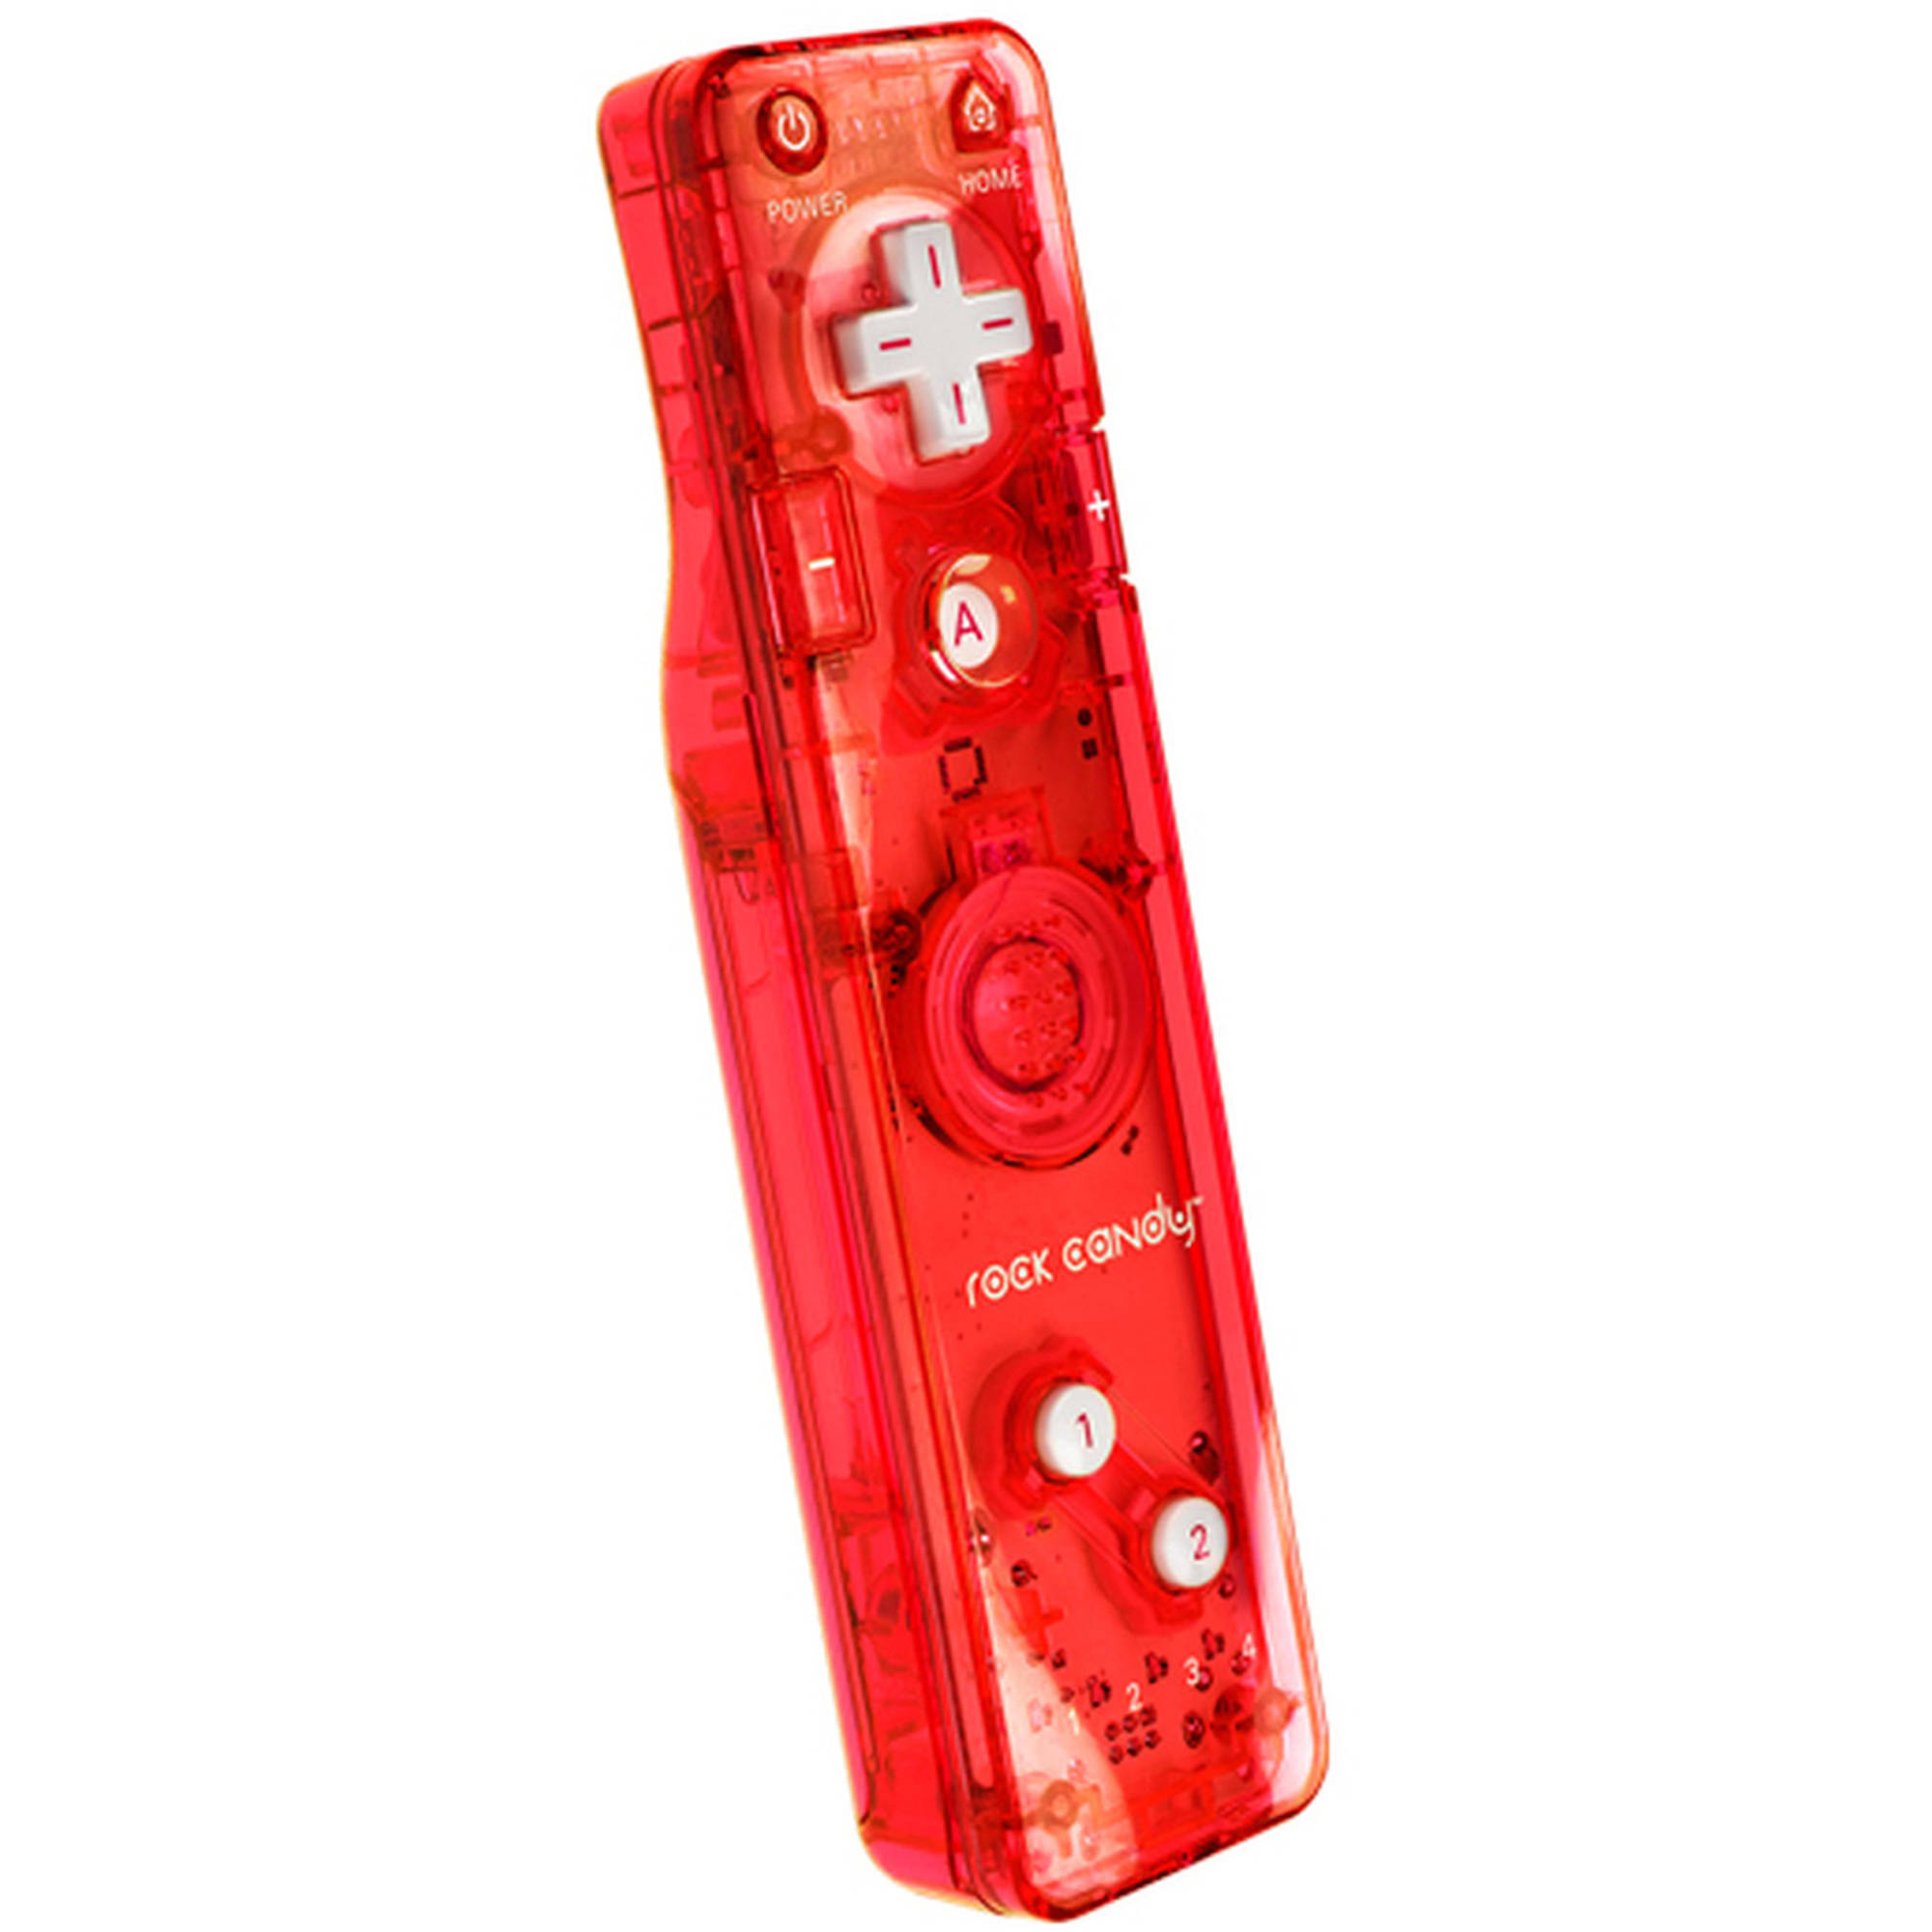 PDP Rock Candy Gesture Controller for Wii/Wii U, Stormin' Cherry